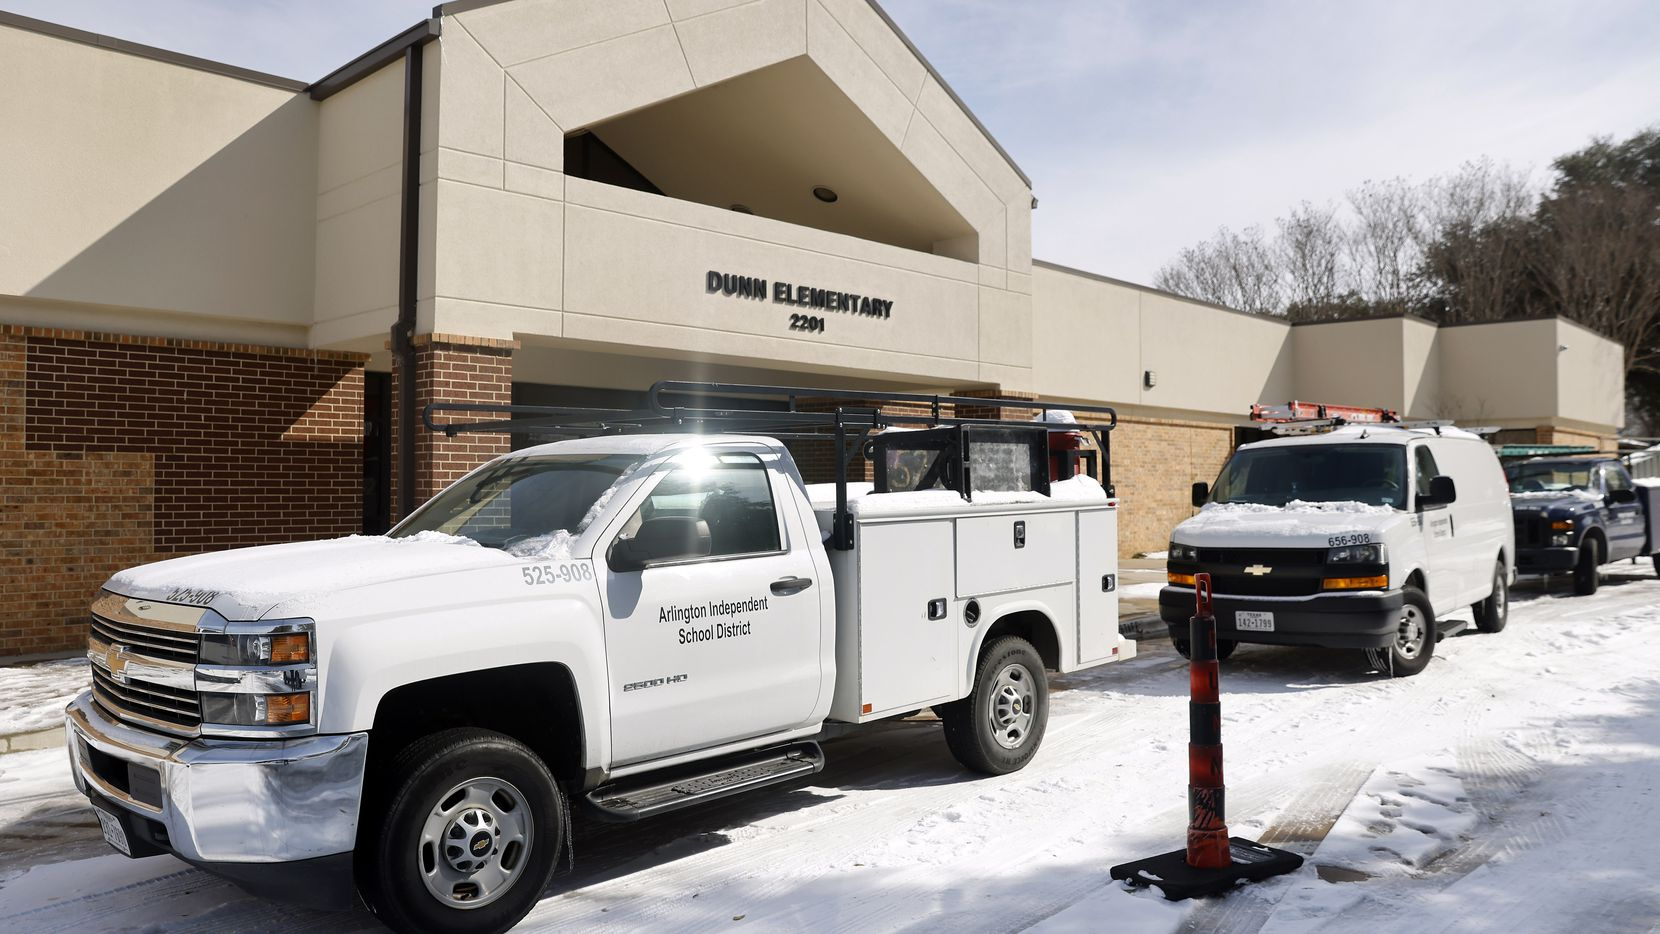 Arlington Independent School District crews began cleanup Thursday at Dunn Elementary School after a large water pipe burst and flooded the school.